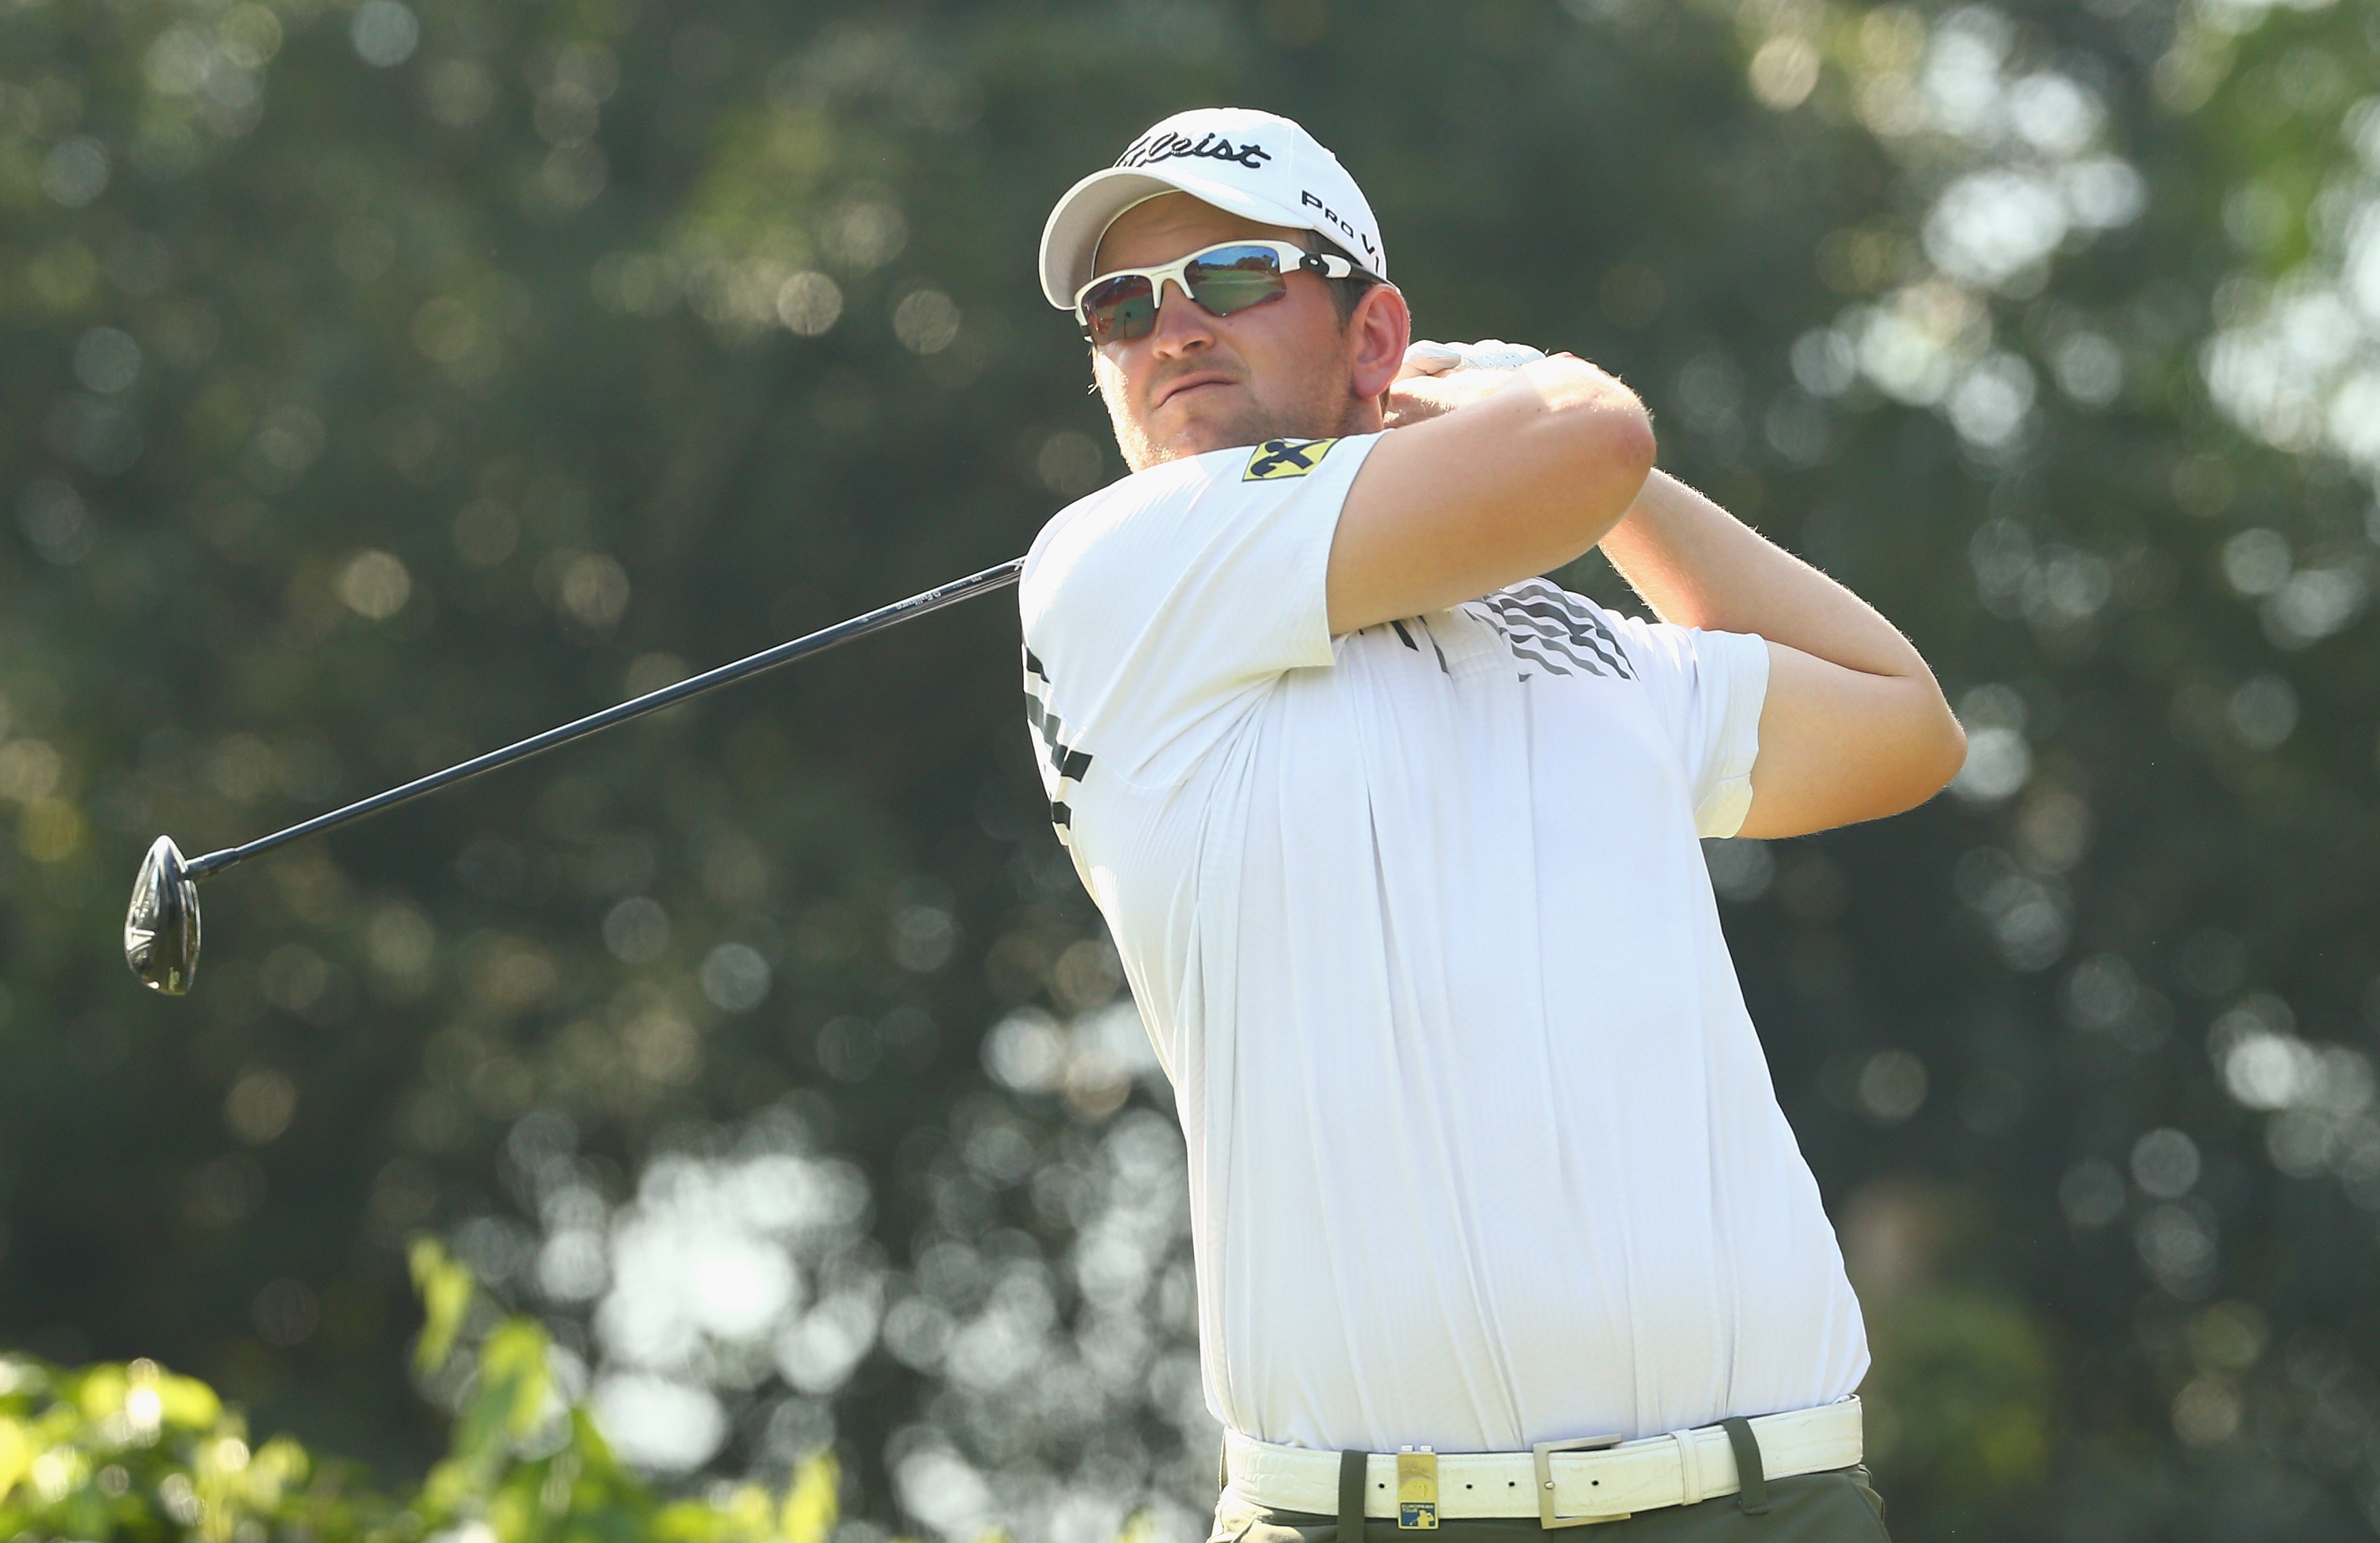 Bernd Wiesberger plays a shot during the third round of the Malaysian Open in Kuala Lumpur on Saturday.